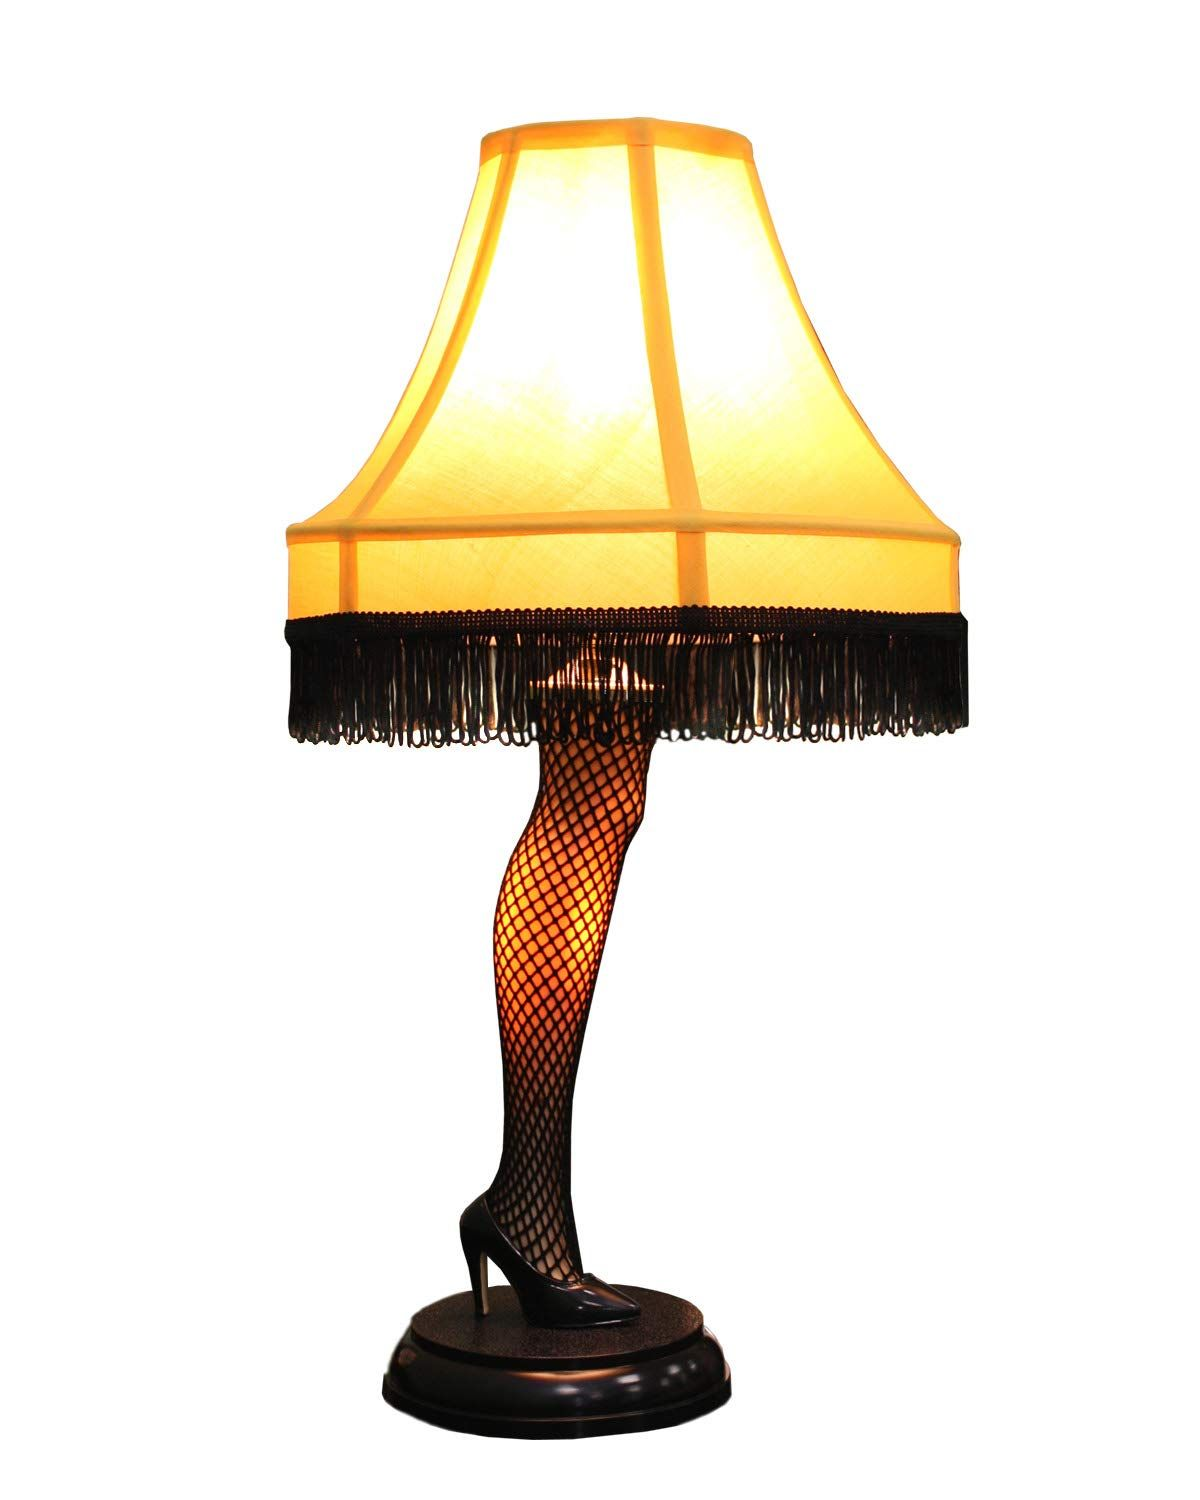 A Christmas Story 20 inch Leg Lamp Prop Replica by NECA,